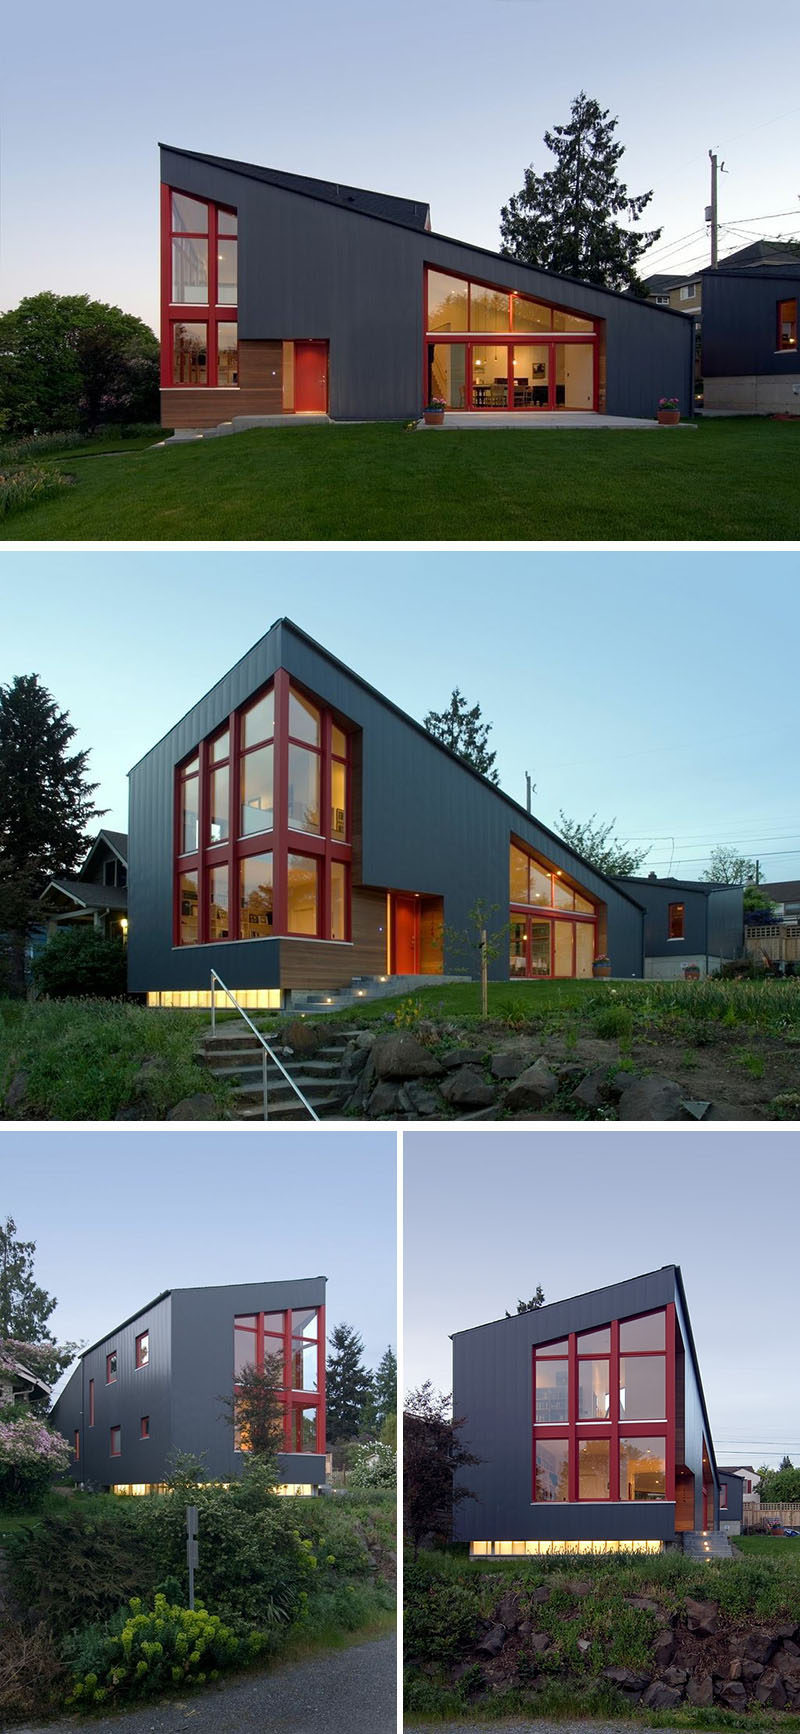 Stettler Design Together With Paul Michael Davis Architects, Have Recently  Completed A New House In Seattle, Washington, That Has A Sloped Roof And  Large ...